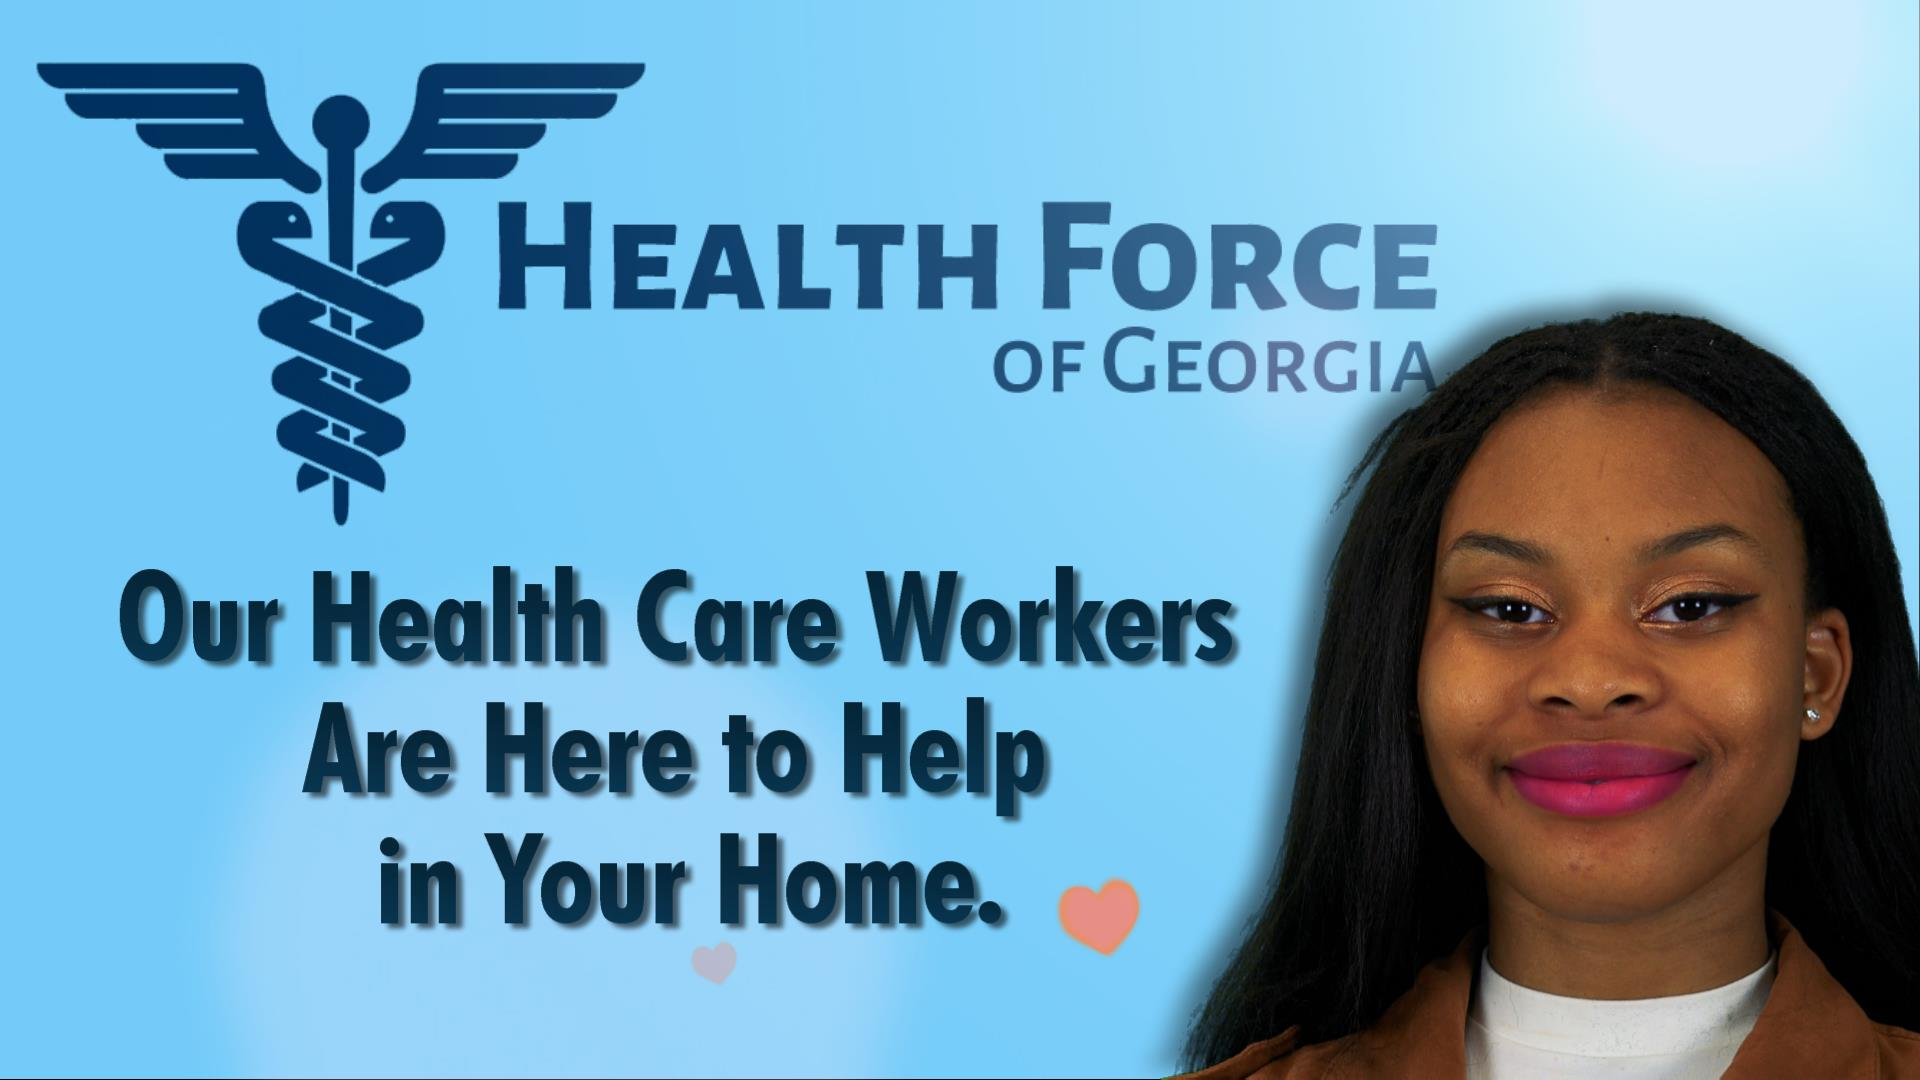 Health force of GA health care workers are here to help in your home.